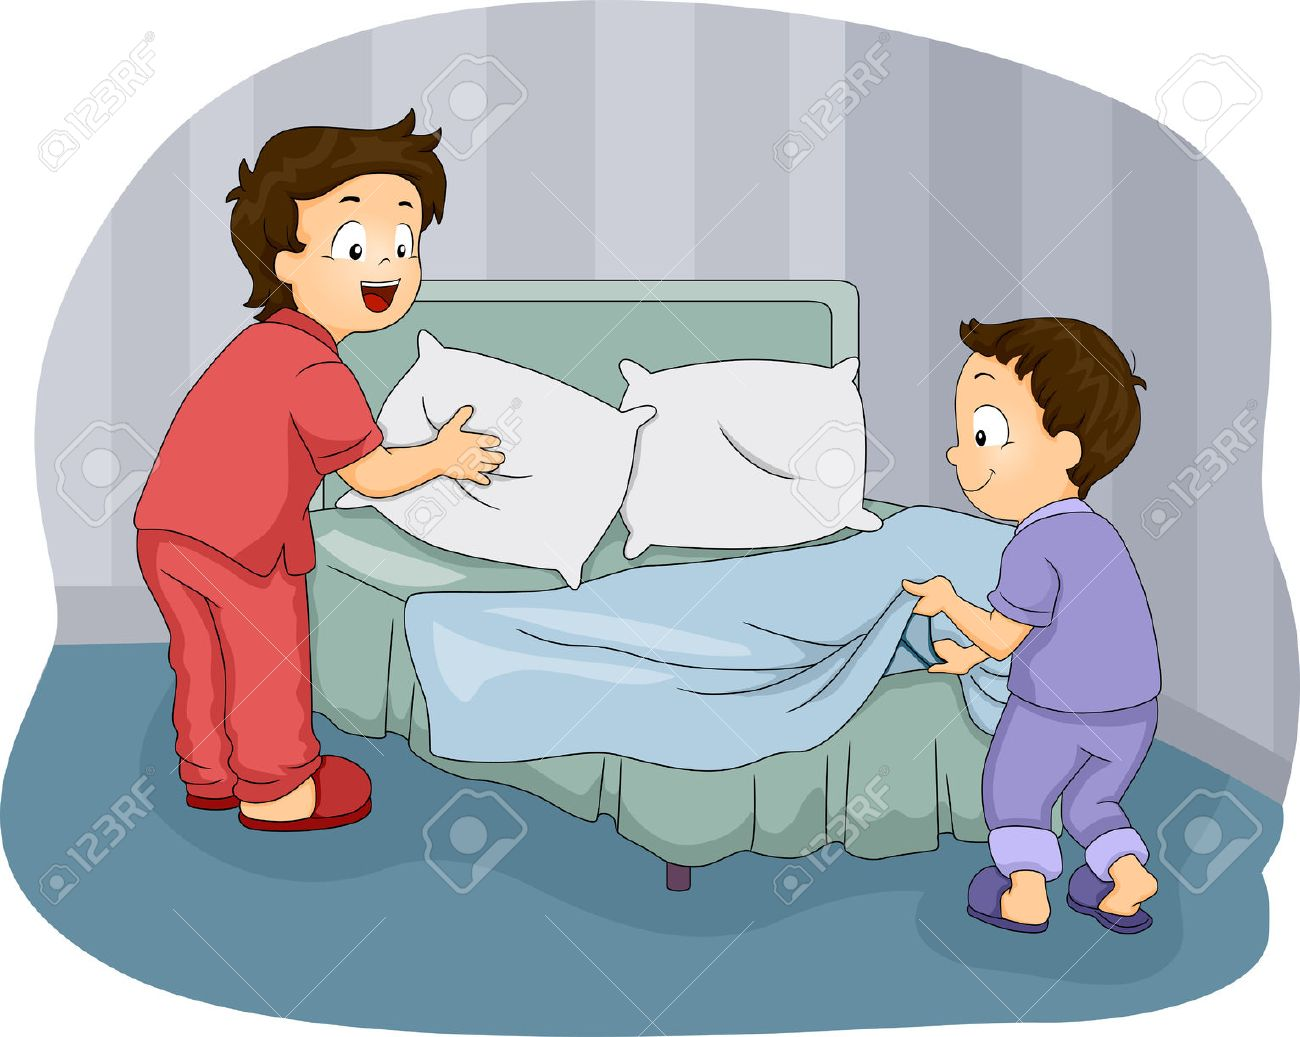 bed sheets  Illustration of Two Little Boys Making Their Bed. Bed Sheets Stock Photos Images  Royalty Free Bed Sheets Images And